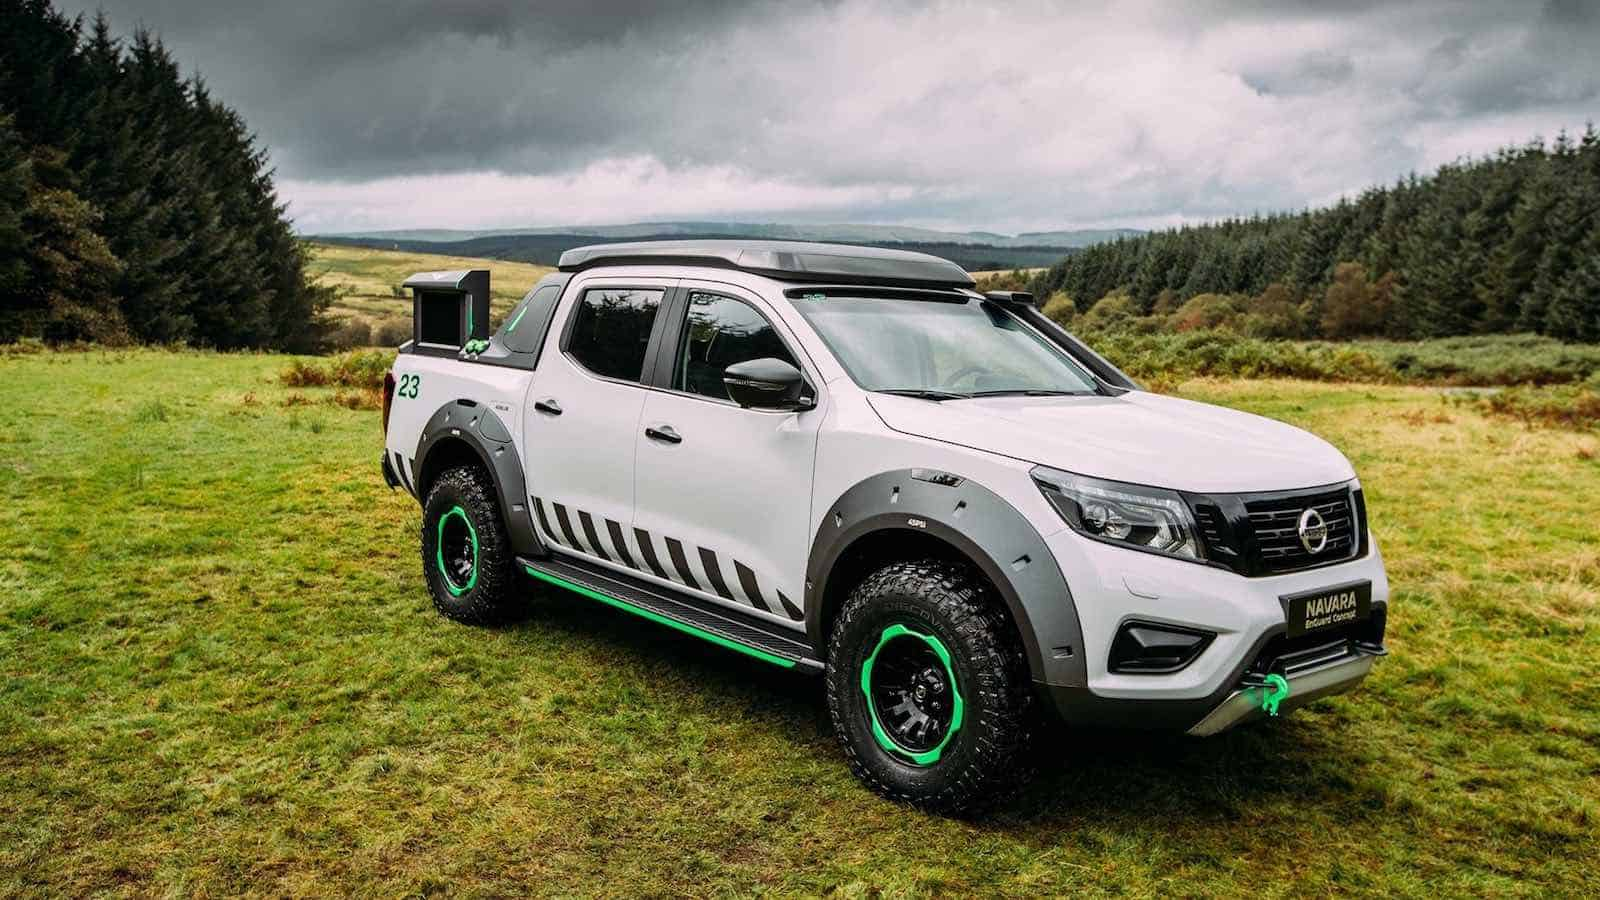 The Nissan Navara Enguard Concept: Taking rescue trucks to another level